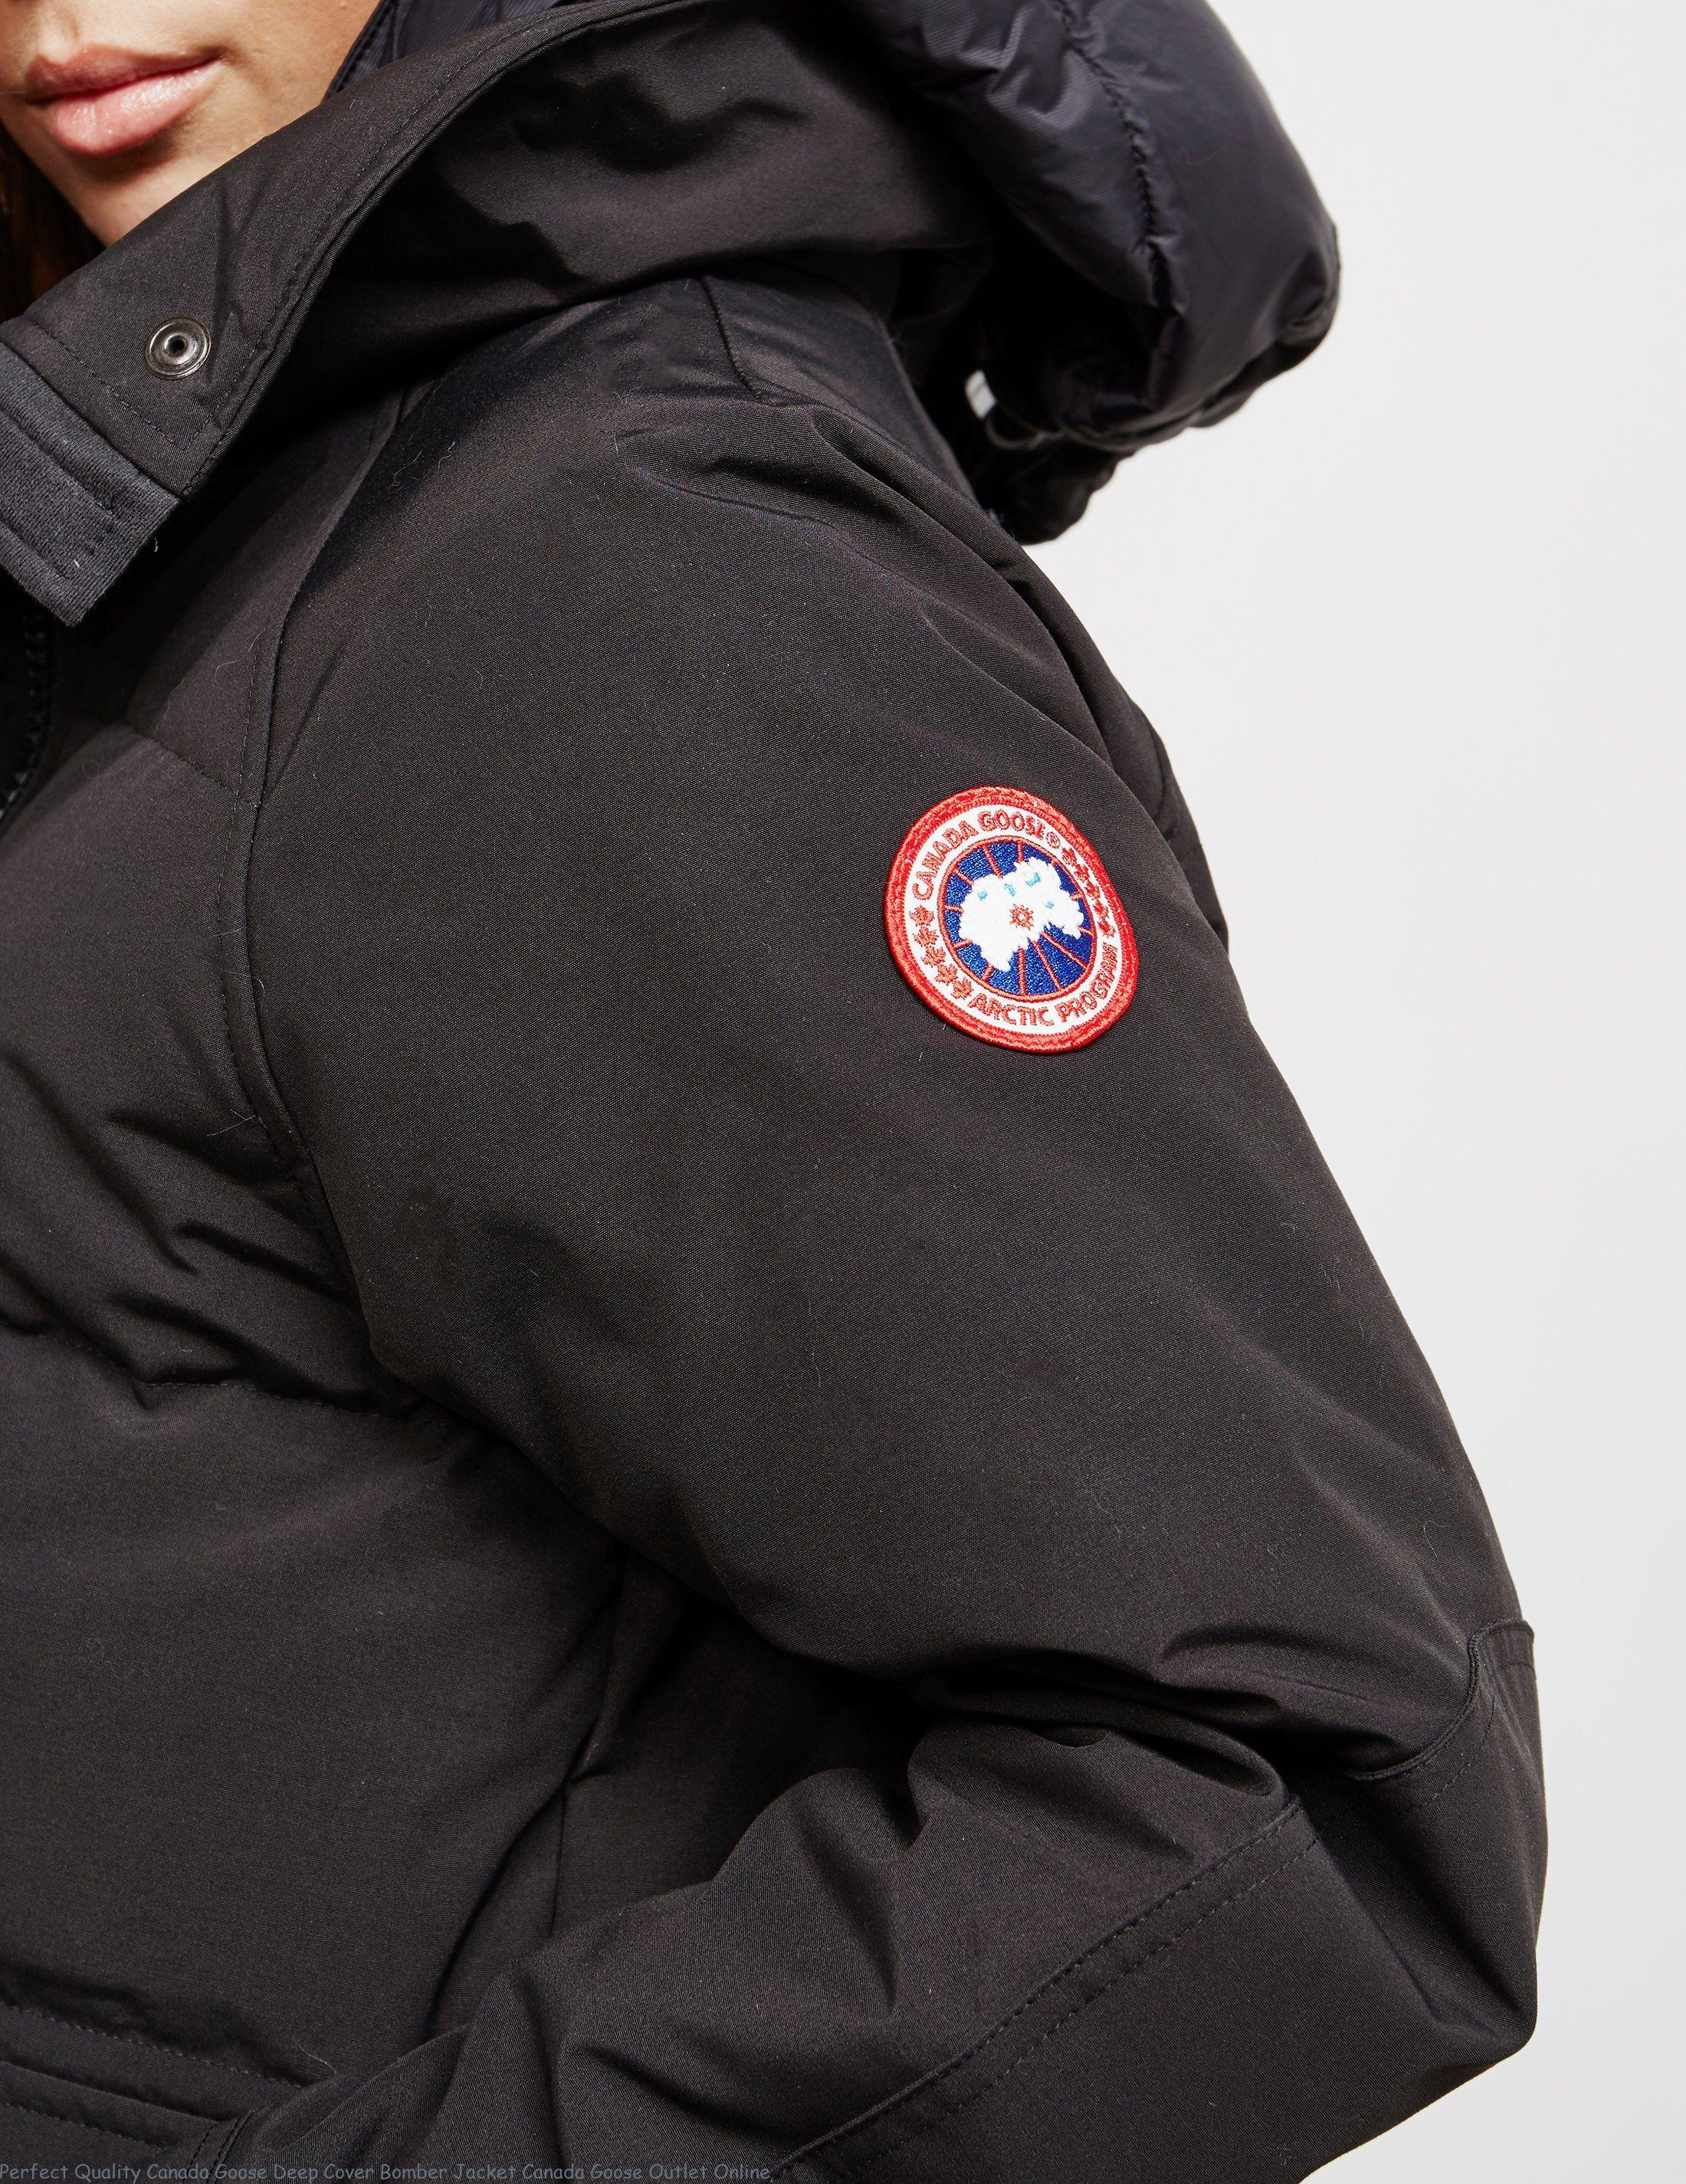 Perfect Quality Canada Goose Deep Cover Bomber Jacket Canada Goose Outlet Online